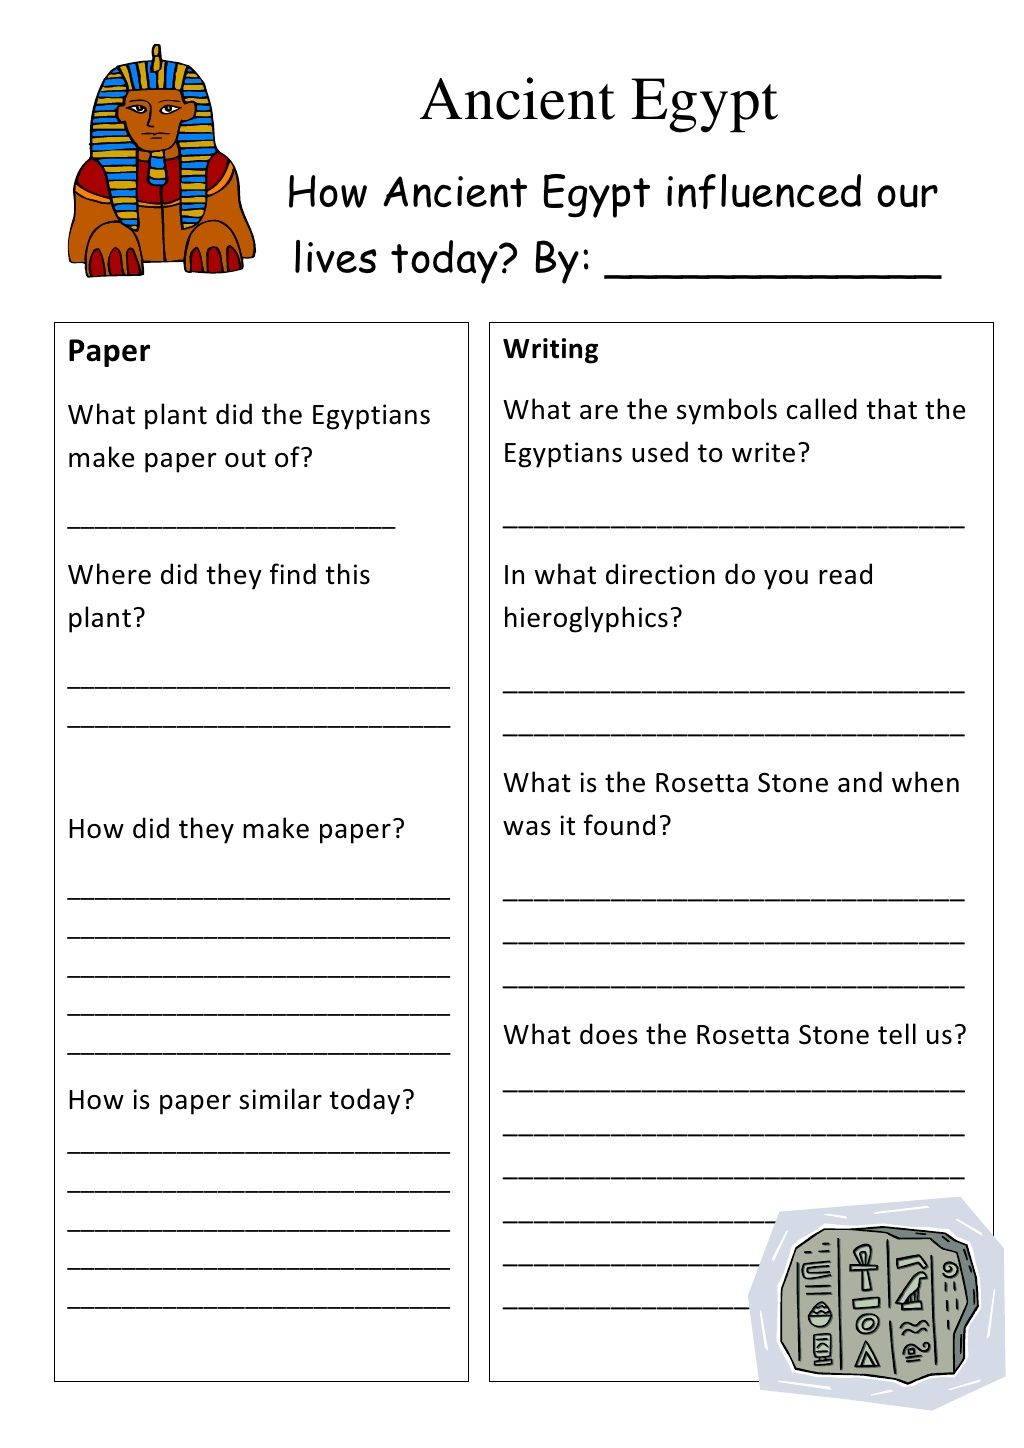 Worksheets Ancient Egypt Worksheets ancient egypt worksheet by 7gchaffey via slideshare 7th grade s slideshare